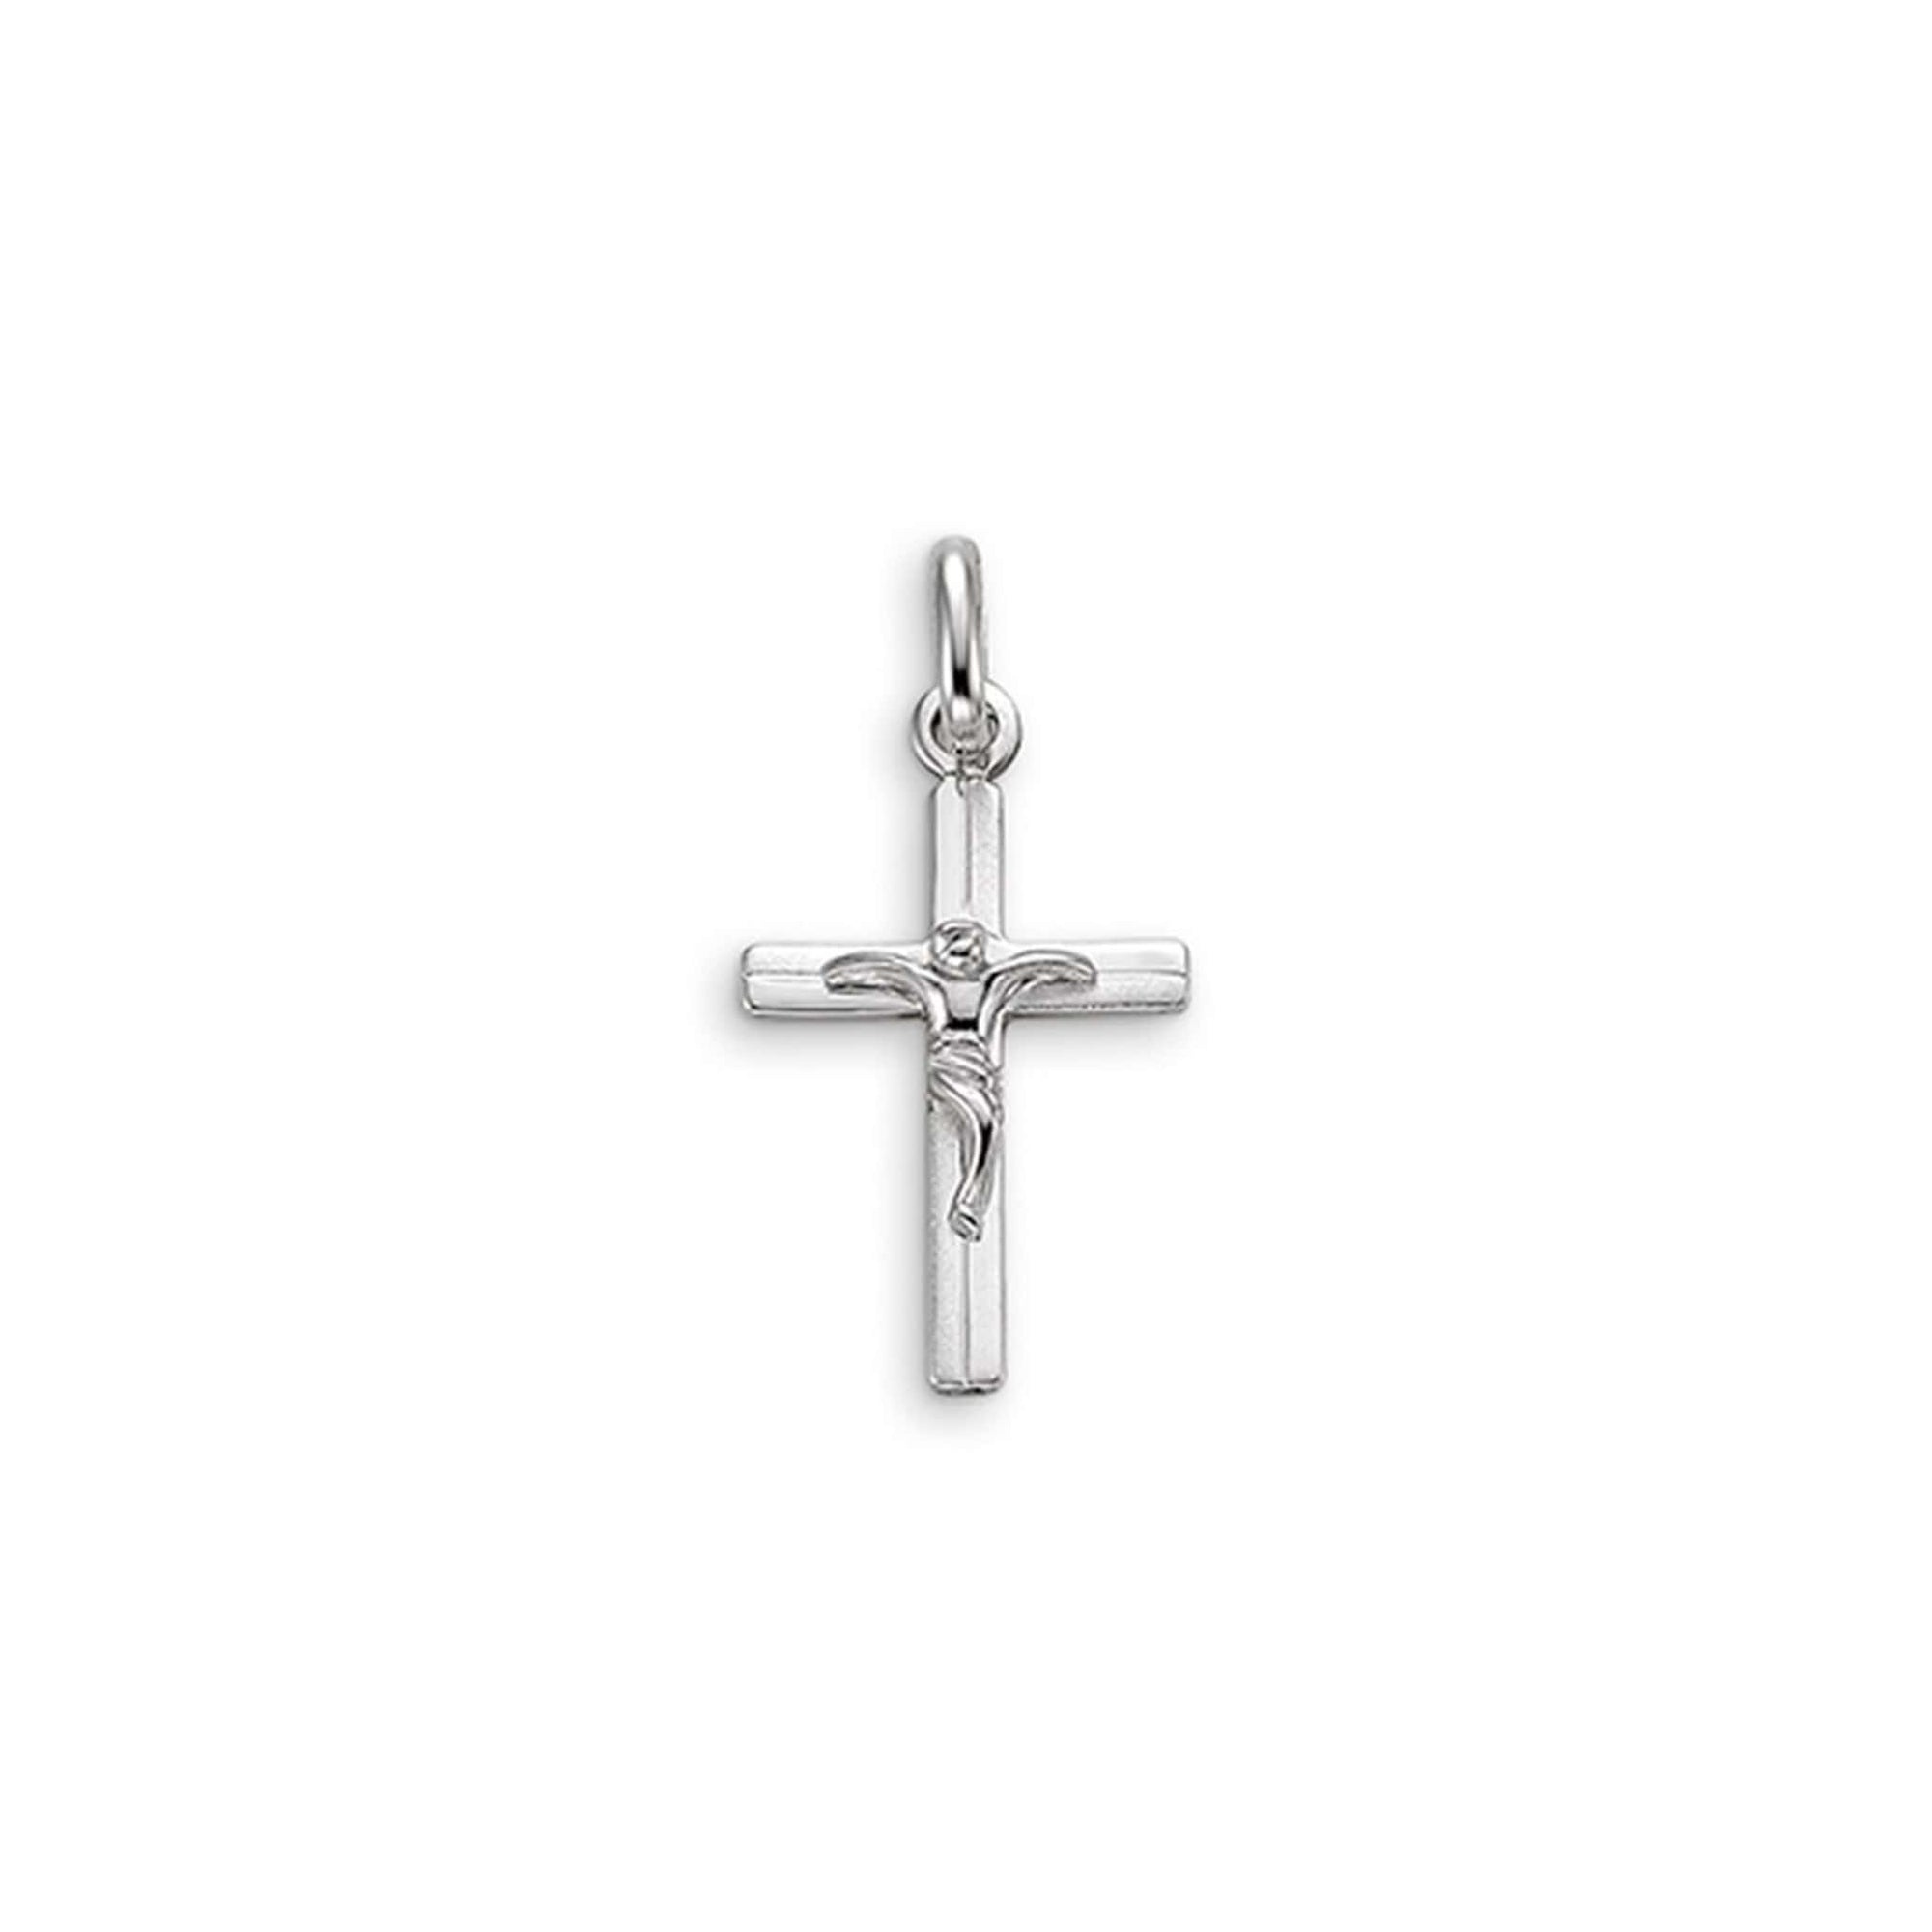 10K Two-tone Gold Crucifix Cross Pendant at Arman's Jewellers